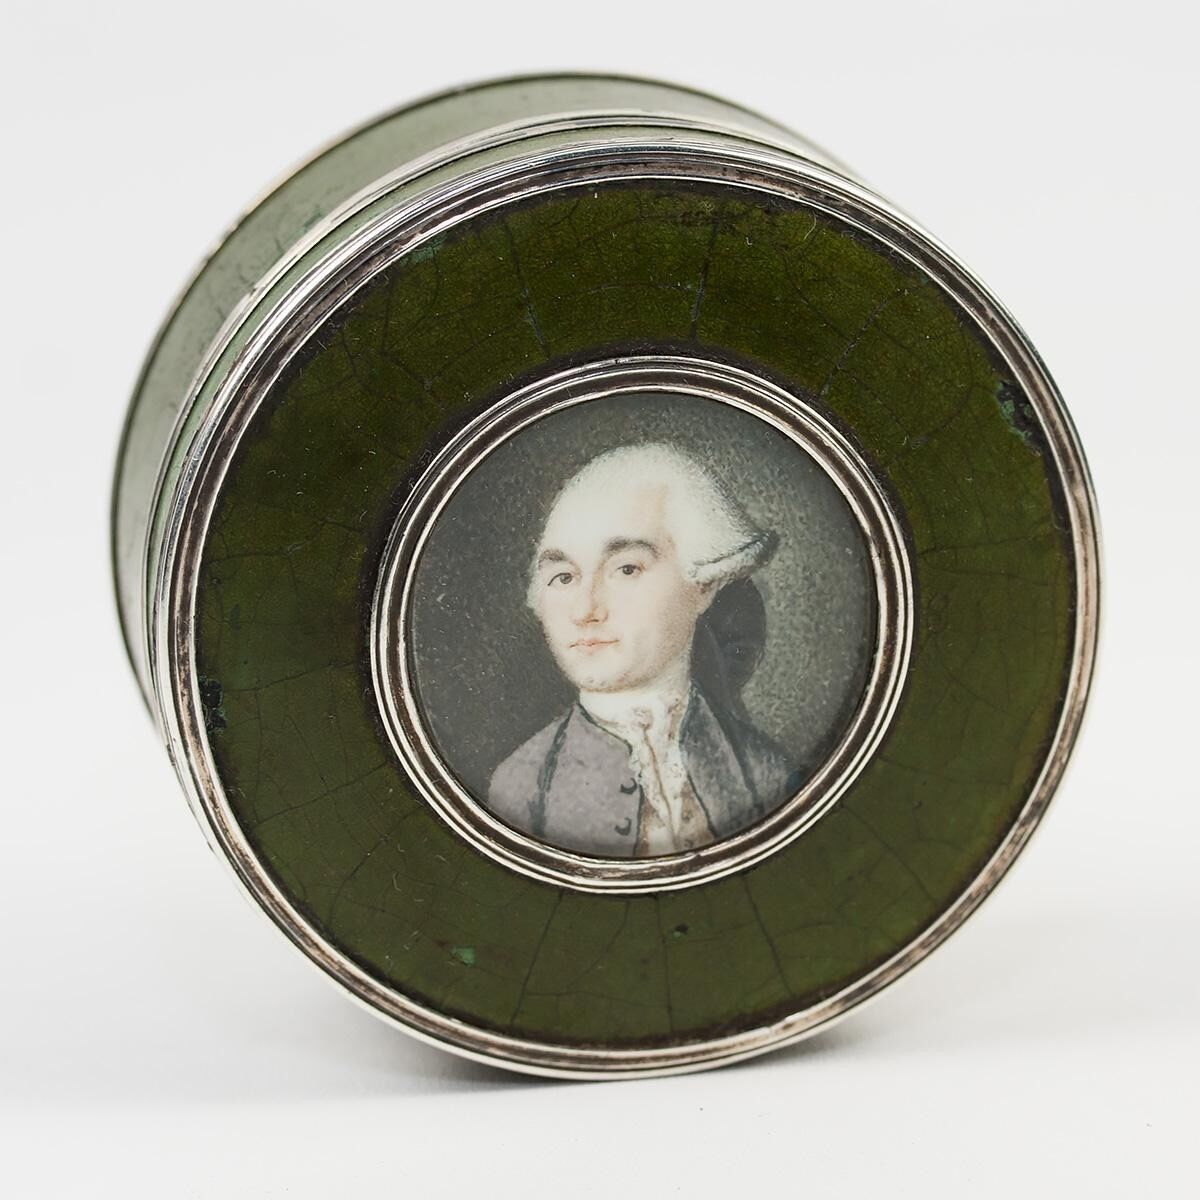 Antique 1700s French Portrait Miniature Snuff or Patch Box, Vernis Martin